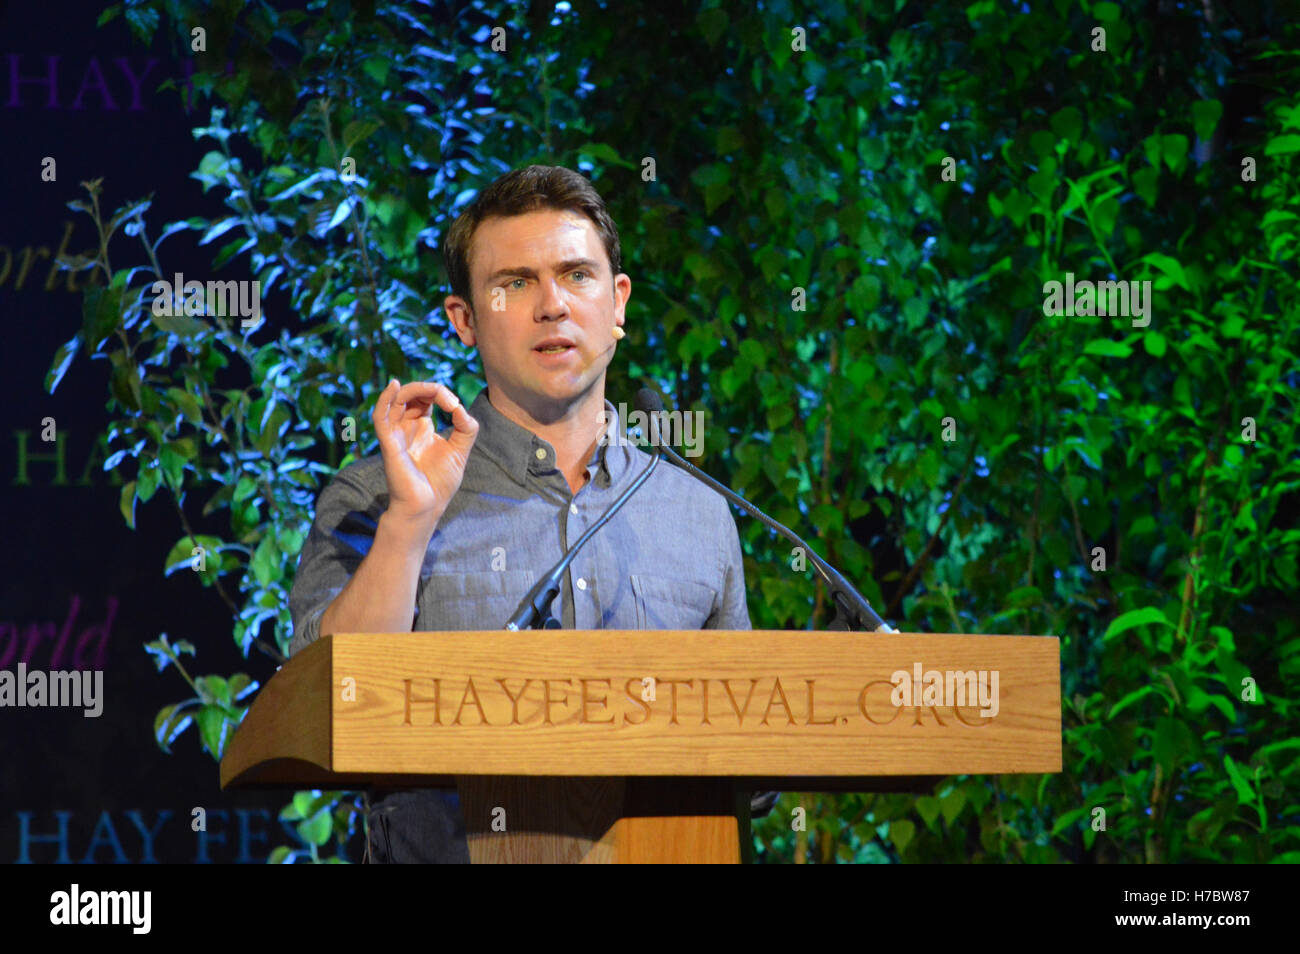 Owen Sheers at the Hay Festival 2014 - Stock Image